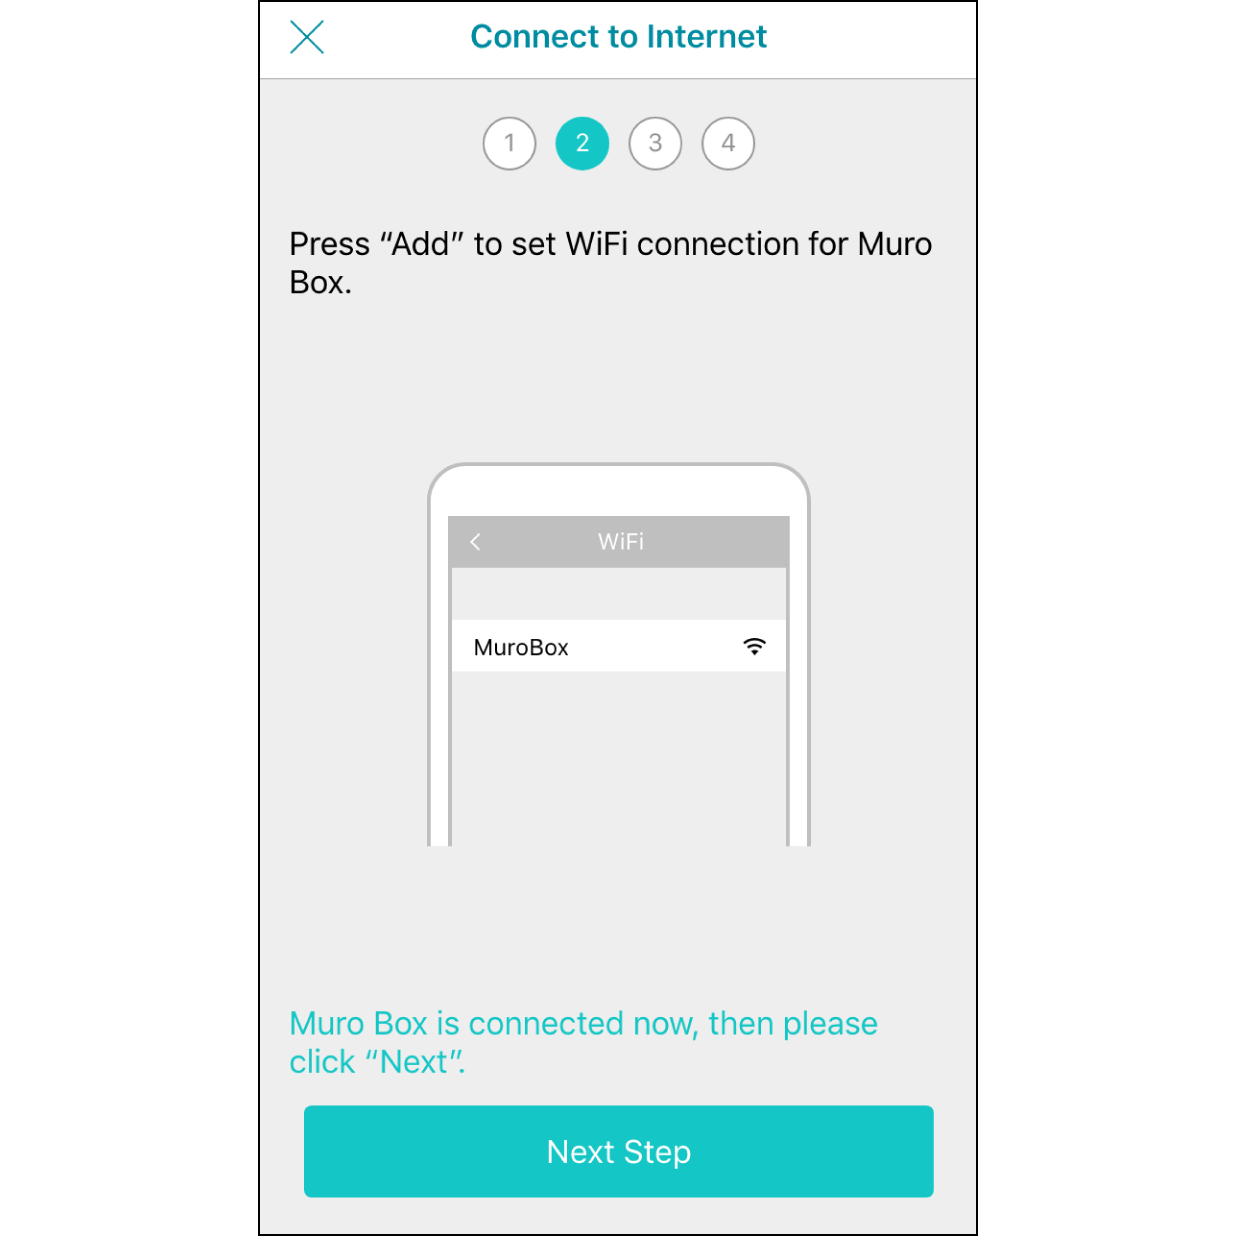 """6. Connected to Muro Box Wi-FiAfter the connection is done, it will indicate """"Connected to Muro Box,"""" and click on """"Next."""""""